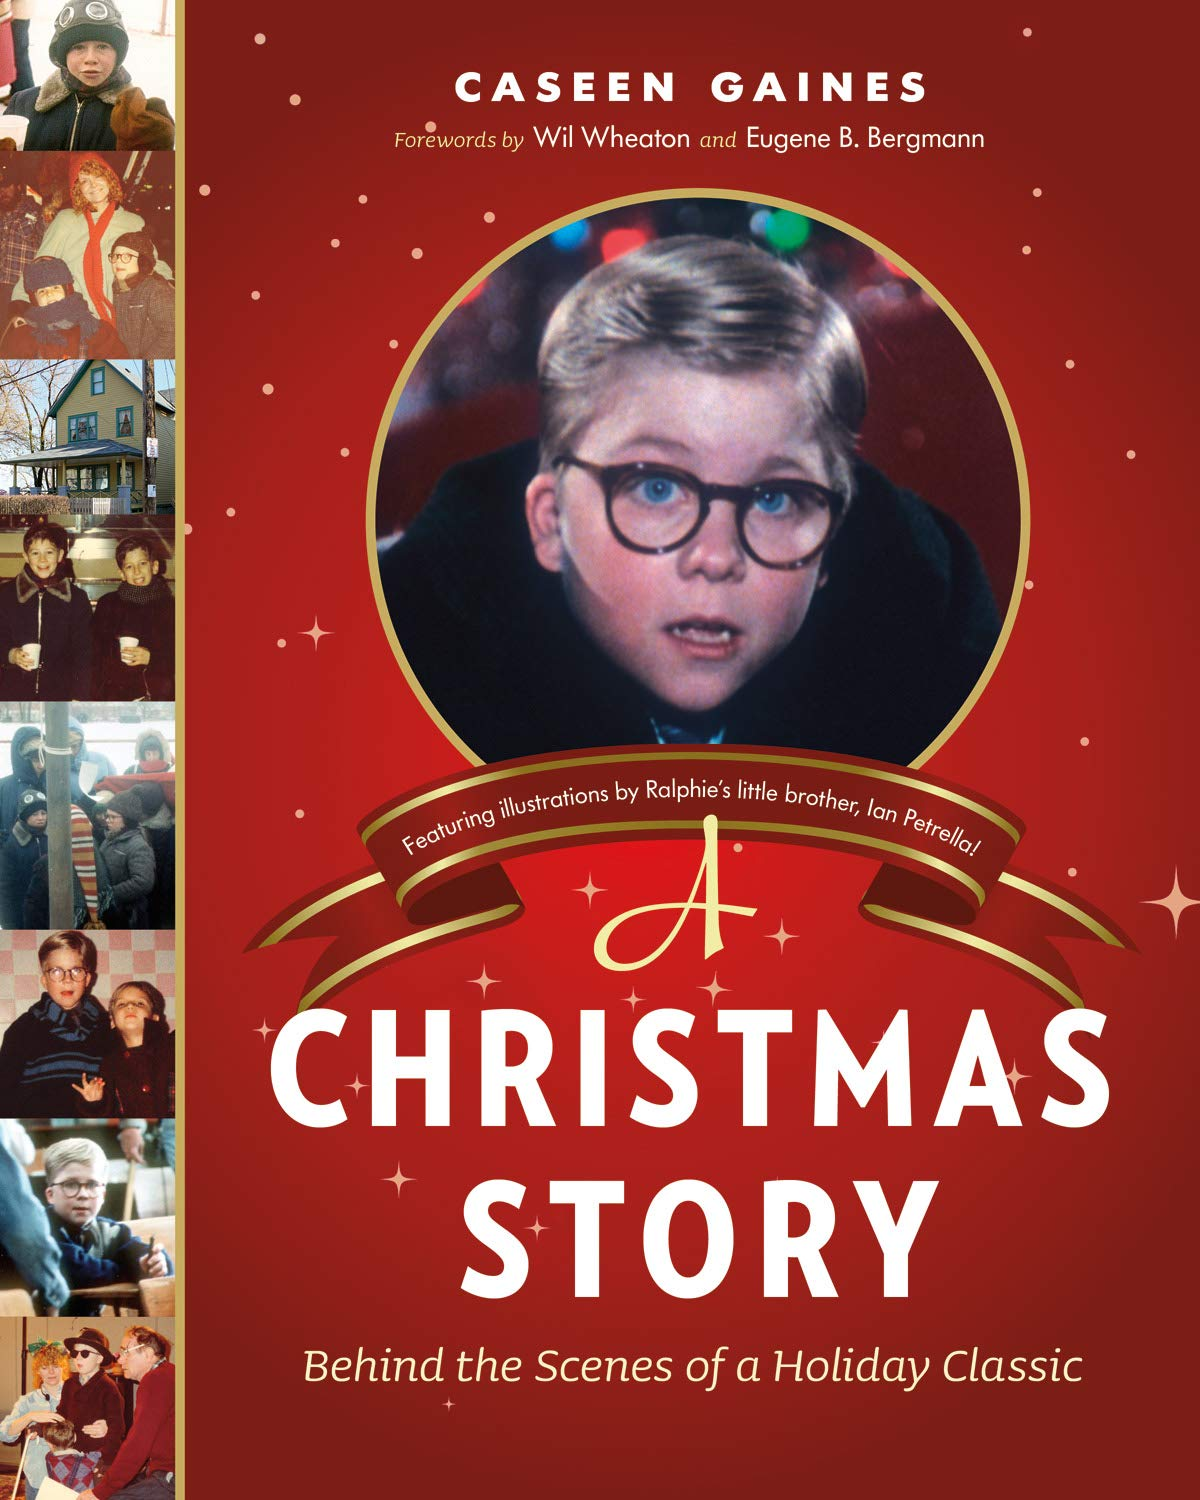 A Christmas Story On Kcpt 2021 A Christmas Story Behind The Scenes Of A Holiday Classic Gaines Caseen Wheaton Wil Bergmann Eugene B 9781770411401 Amazon Com Books